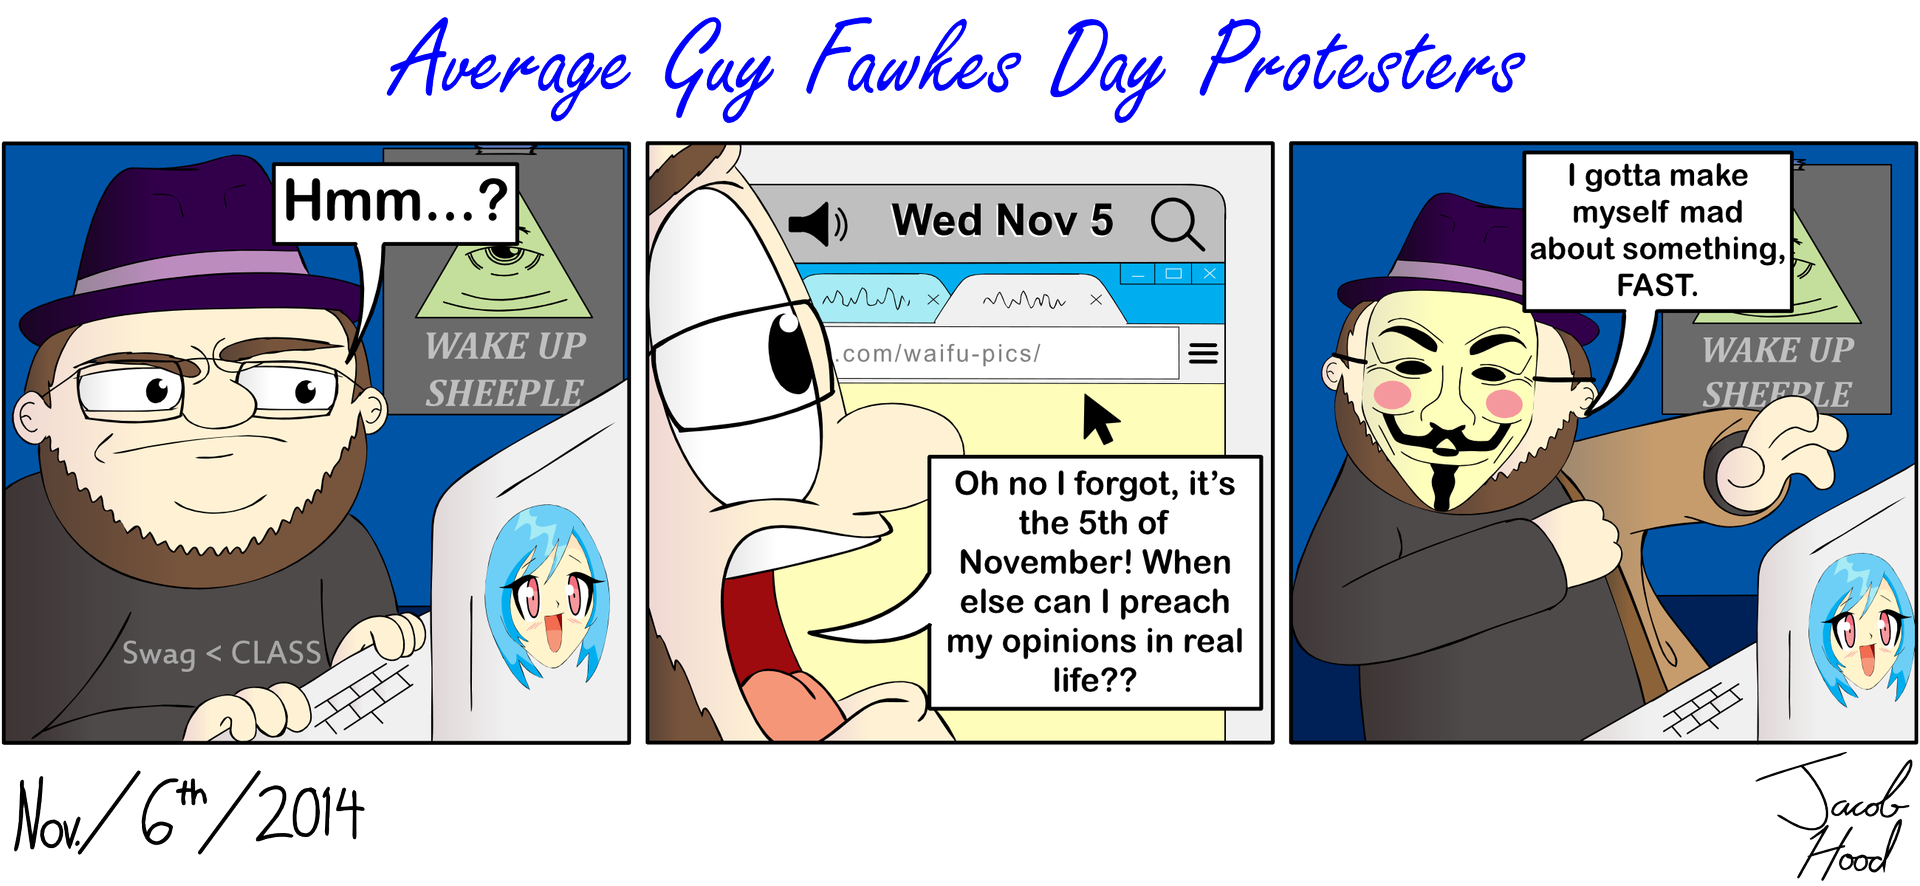 Average Guy Fawkes Day Protesters